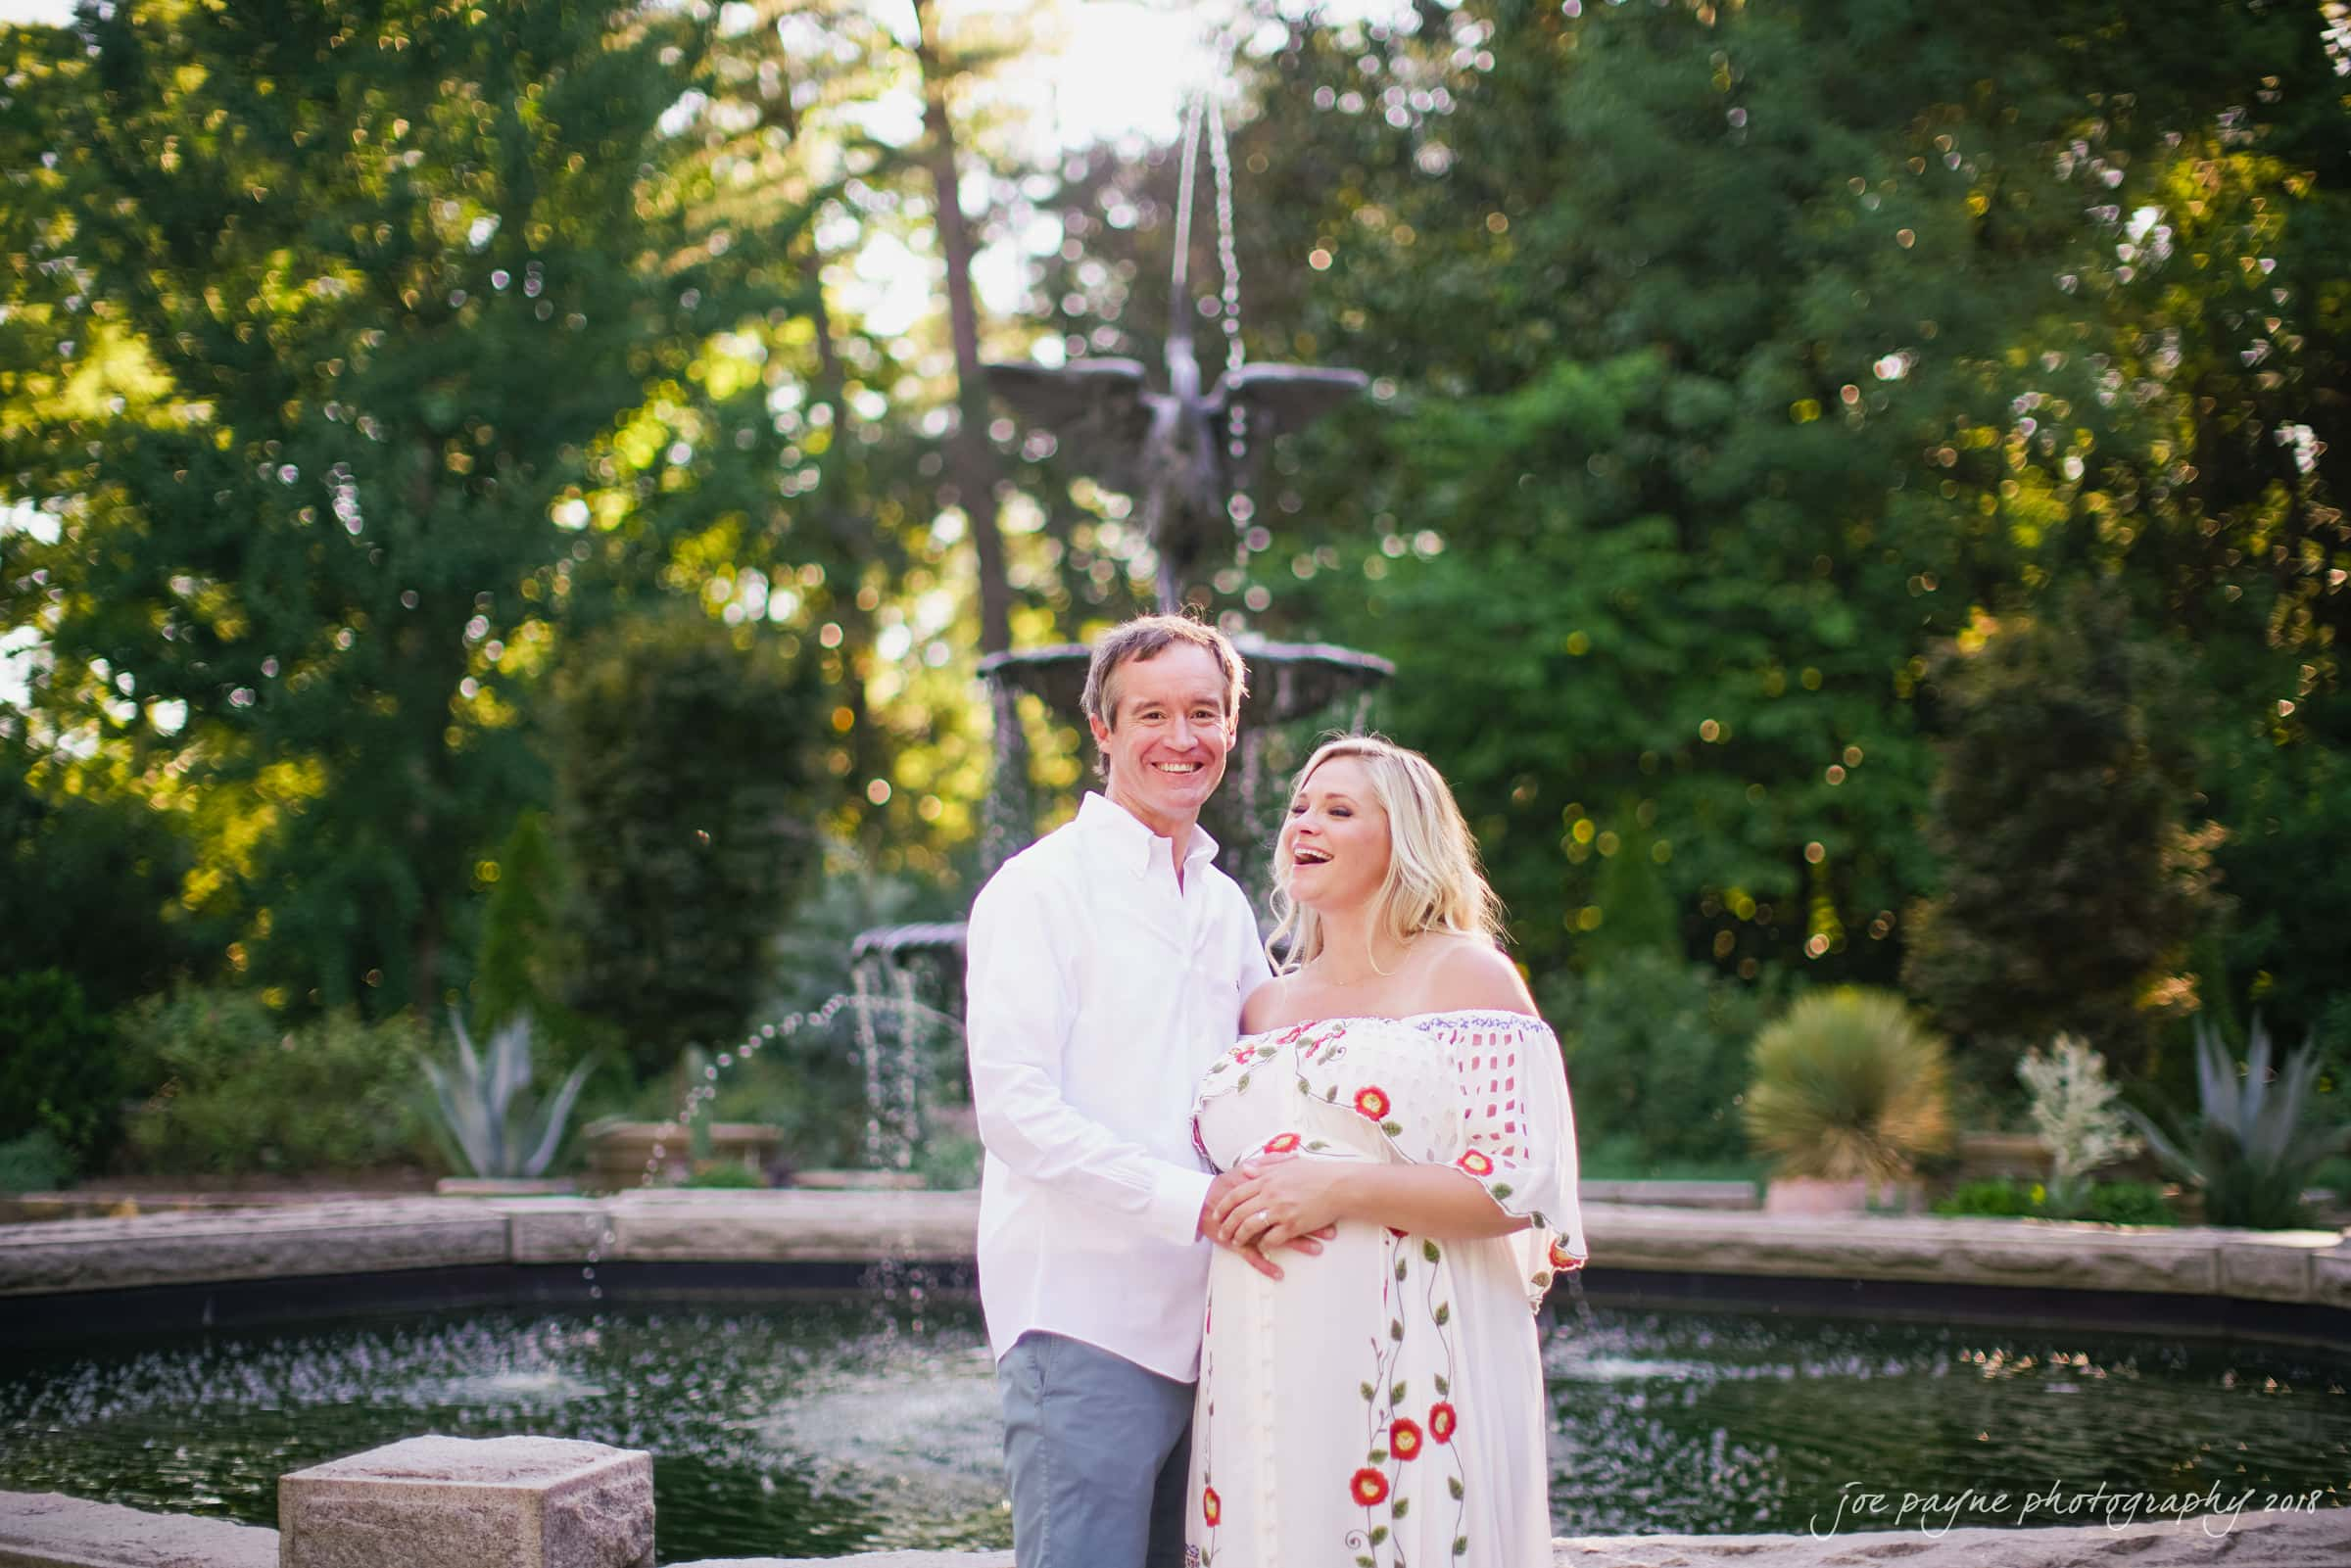 aleigh-Maternity-Photographer-Hallie-Cullen-13 duke gardens maternity session - hallie & cullen